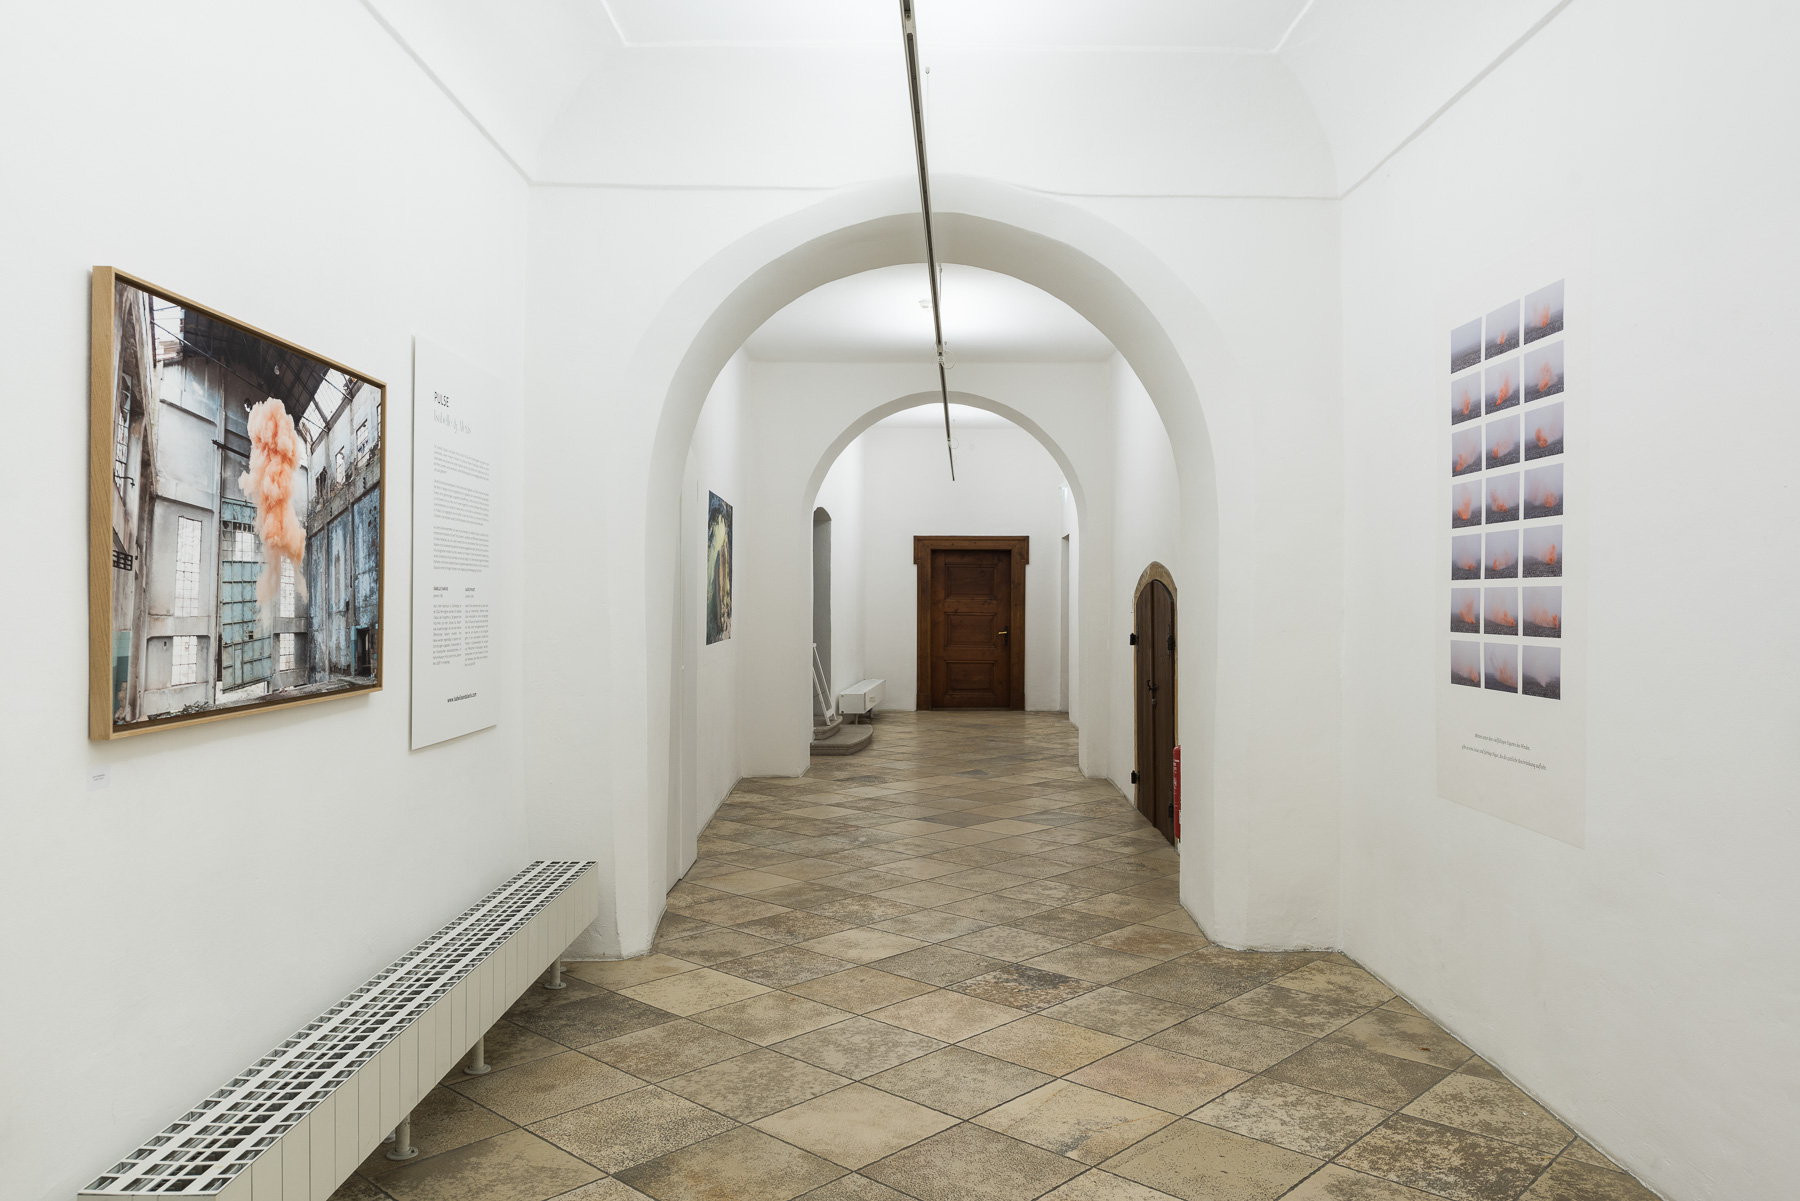 Isabelle-and-Alexis-Luftmuseum-16.jpg